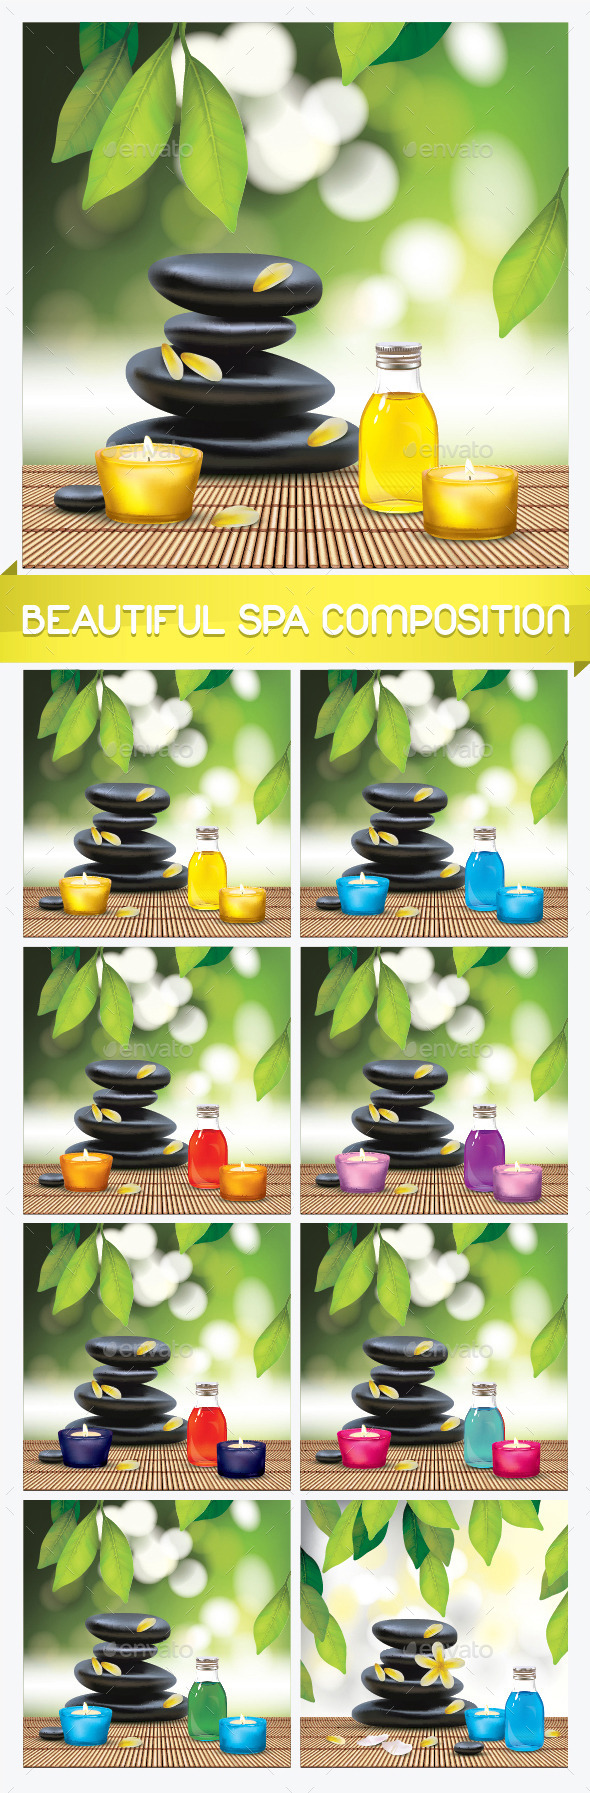 GraphicRiver Spa Composition with Zen Stones 11894809